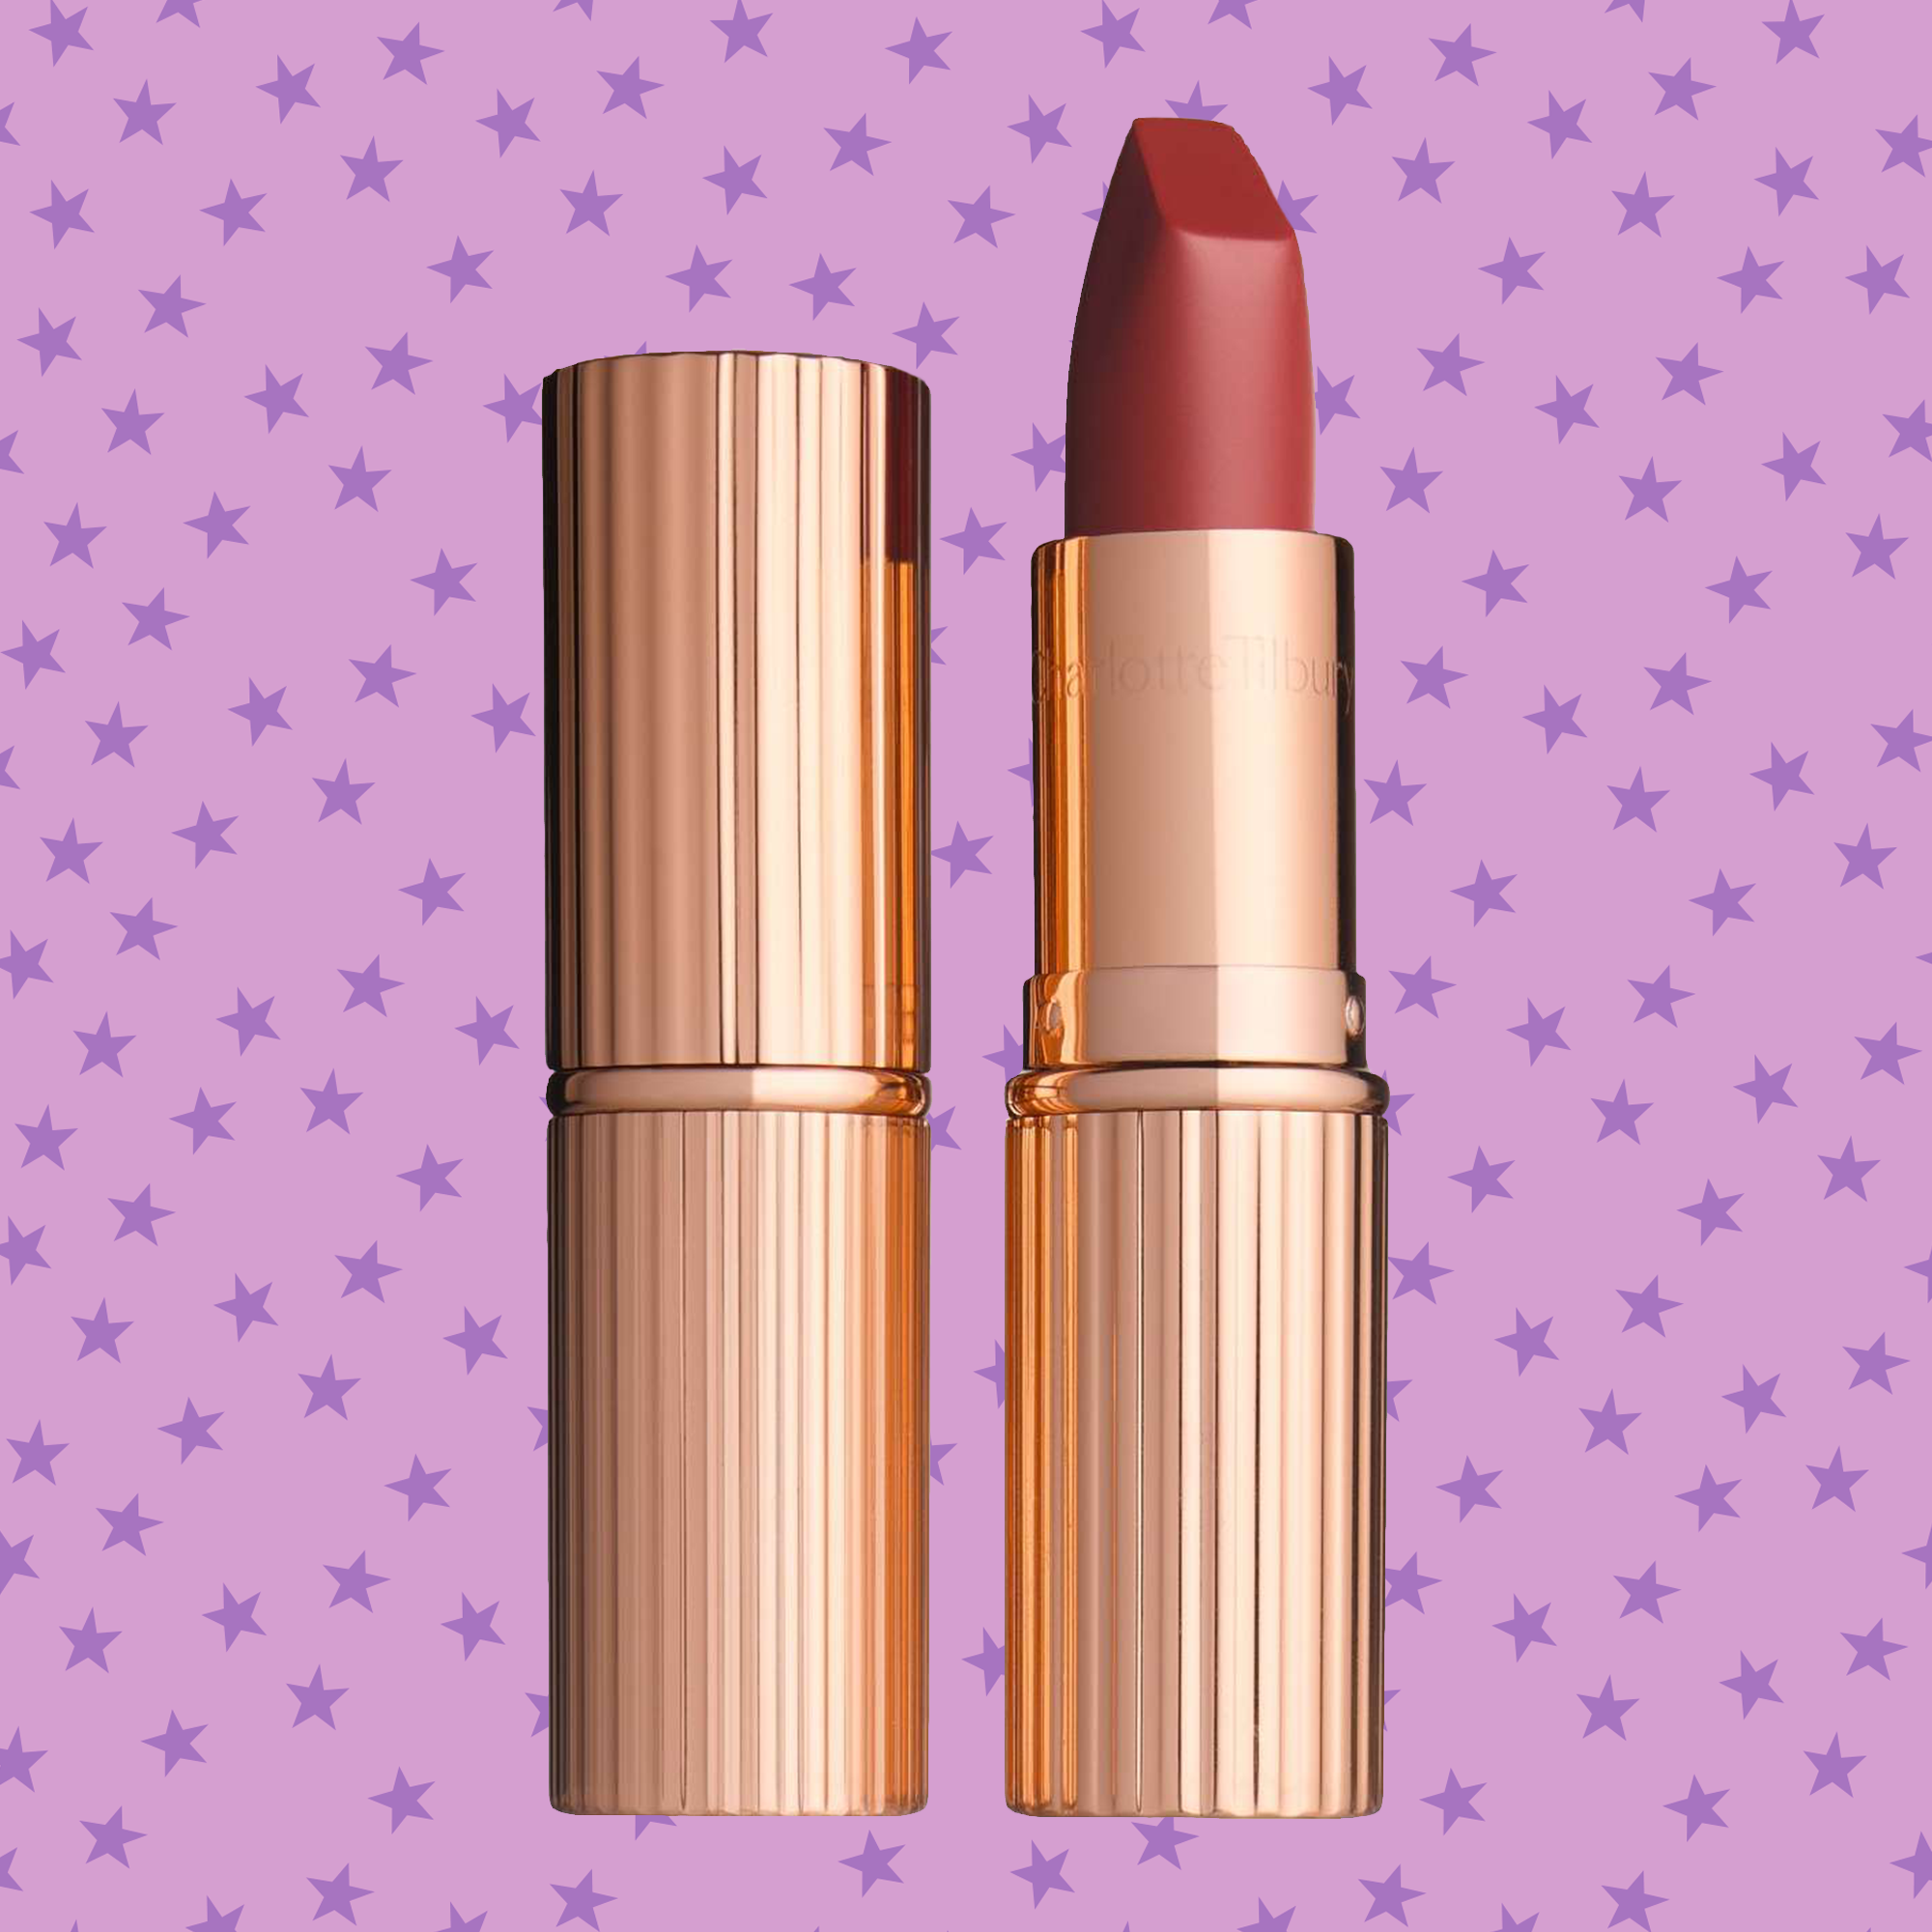 Real Women Vagina Lipstick Color Nude Pink By Skin Tone